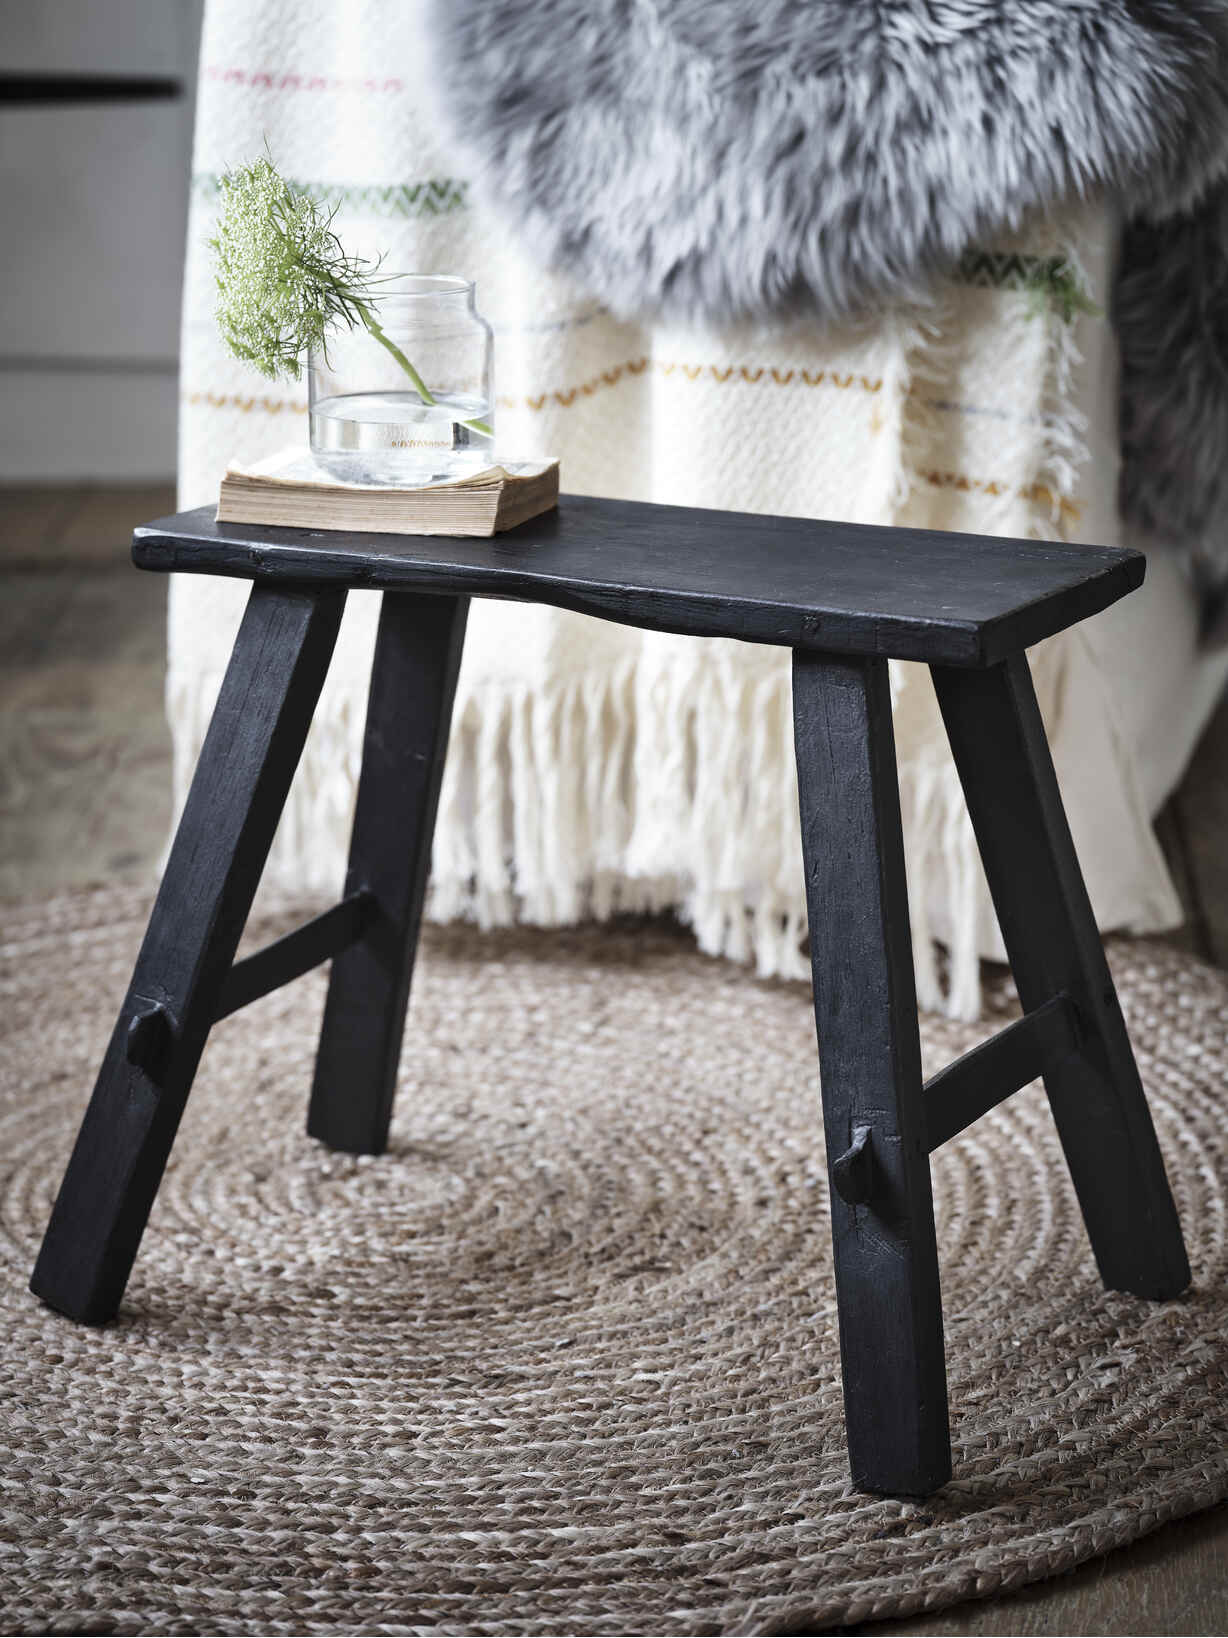 Nordic House Reclaimed Wood Milking Stool - Black